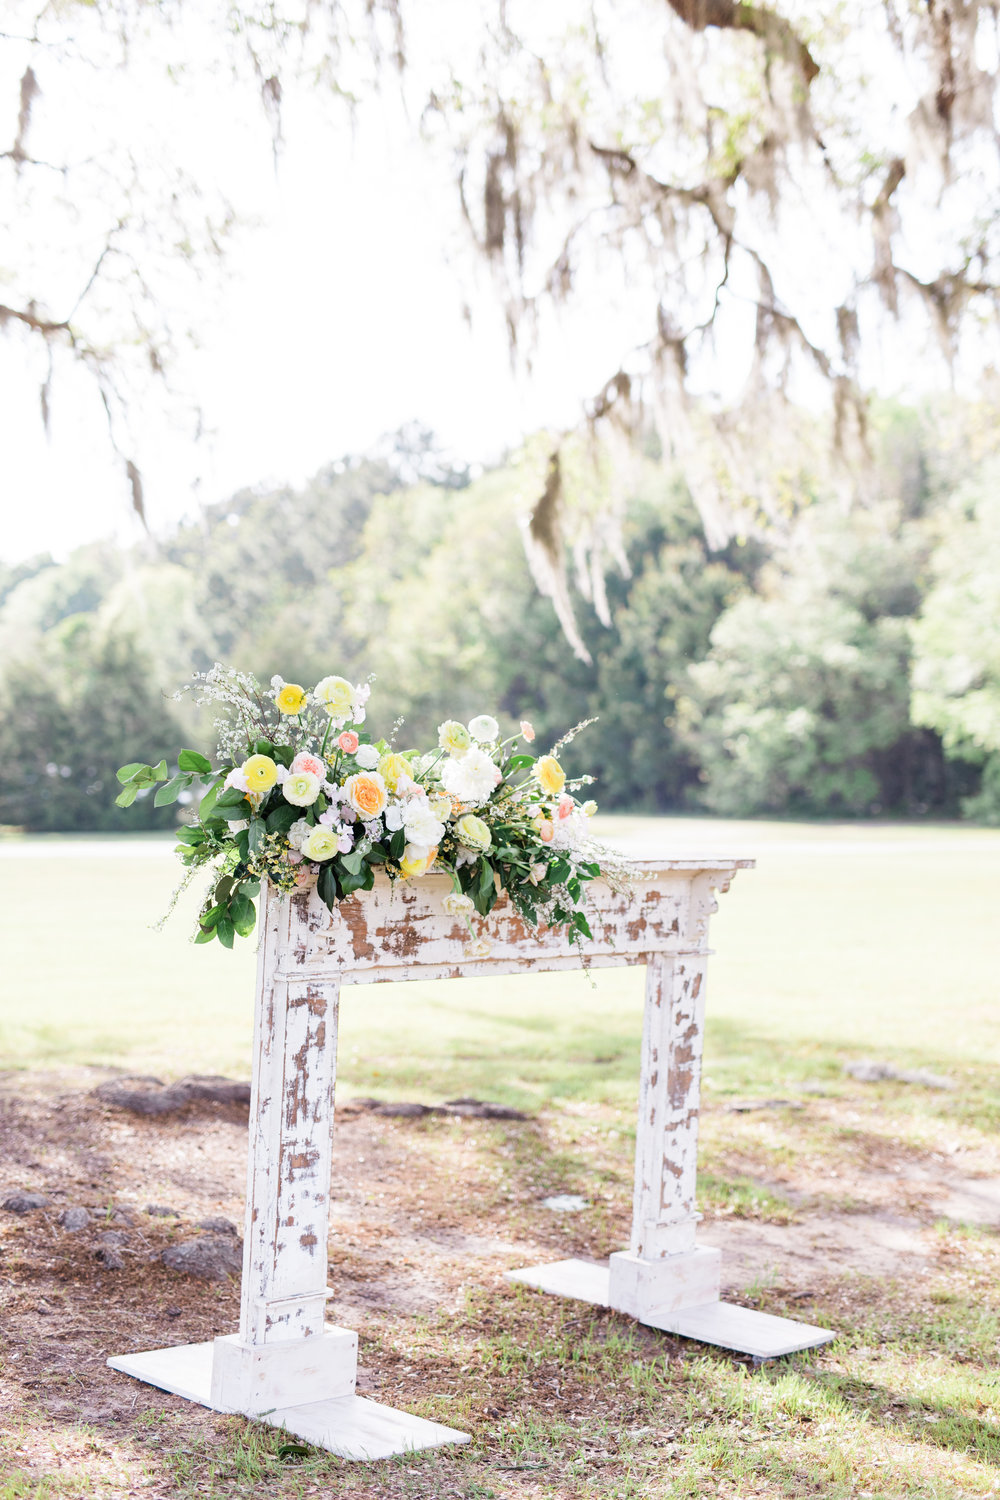 catherineannphotography-wedding-41918-haleyaustin-digital-113.jpg